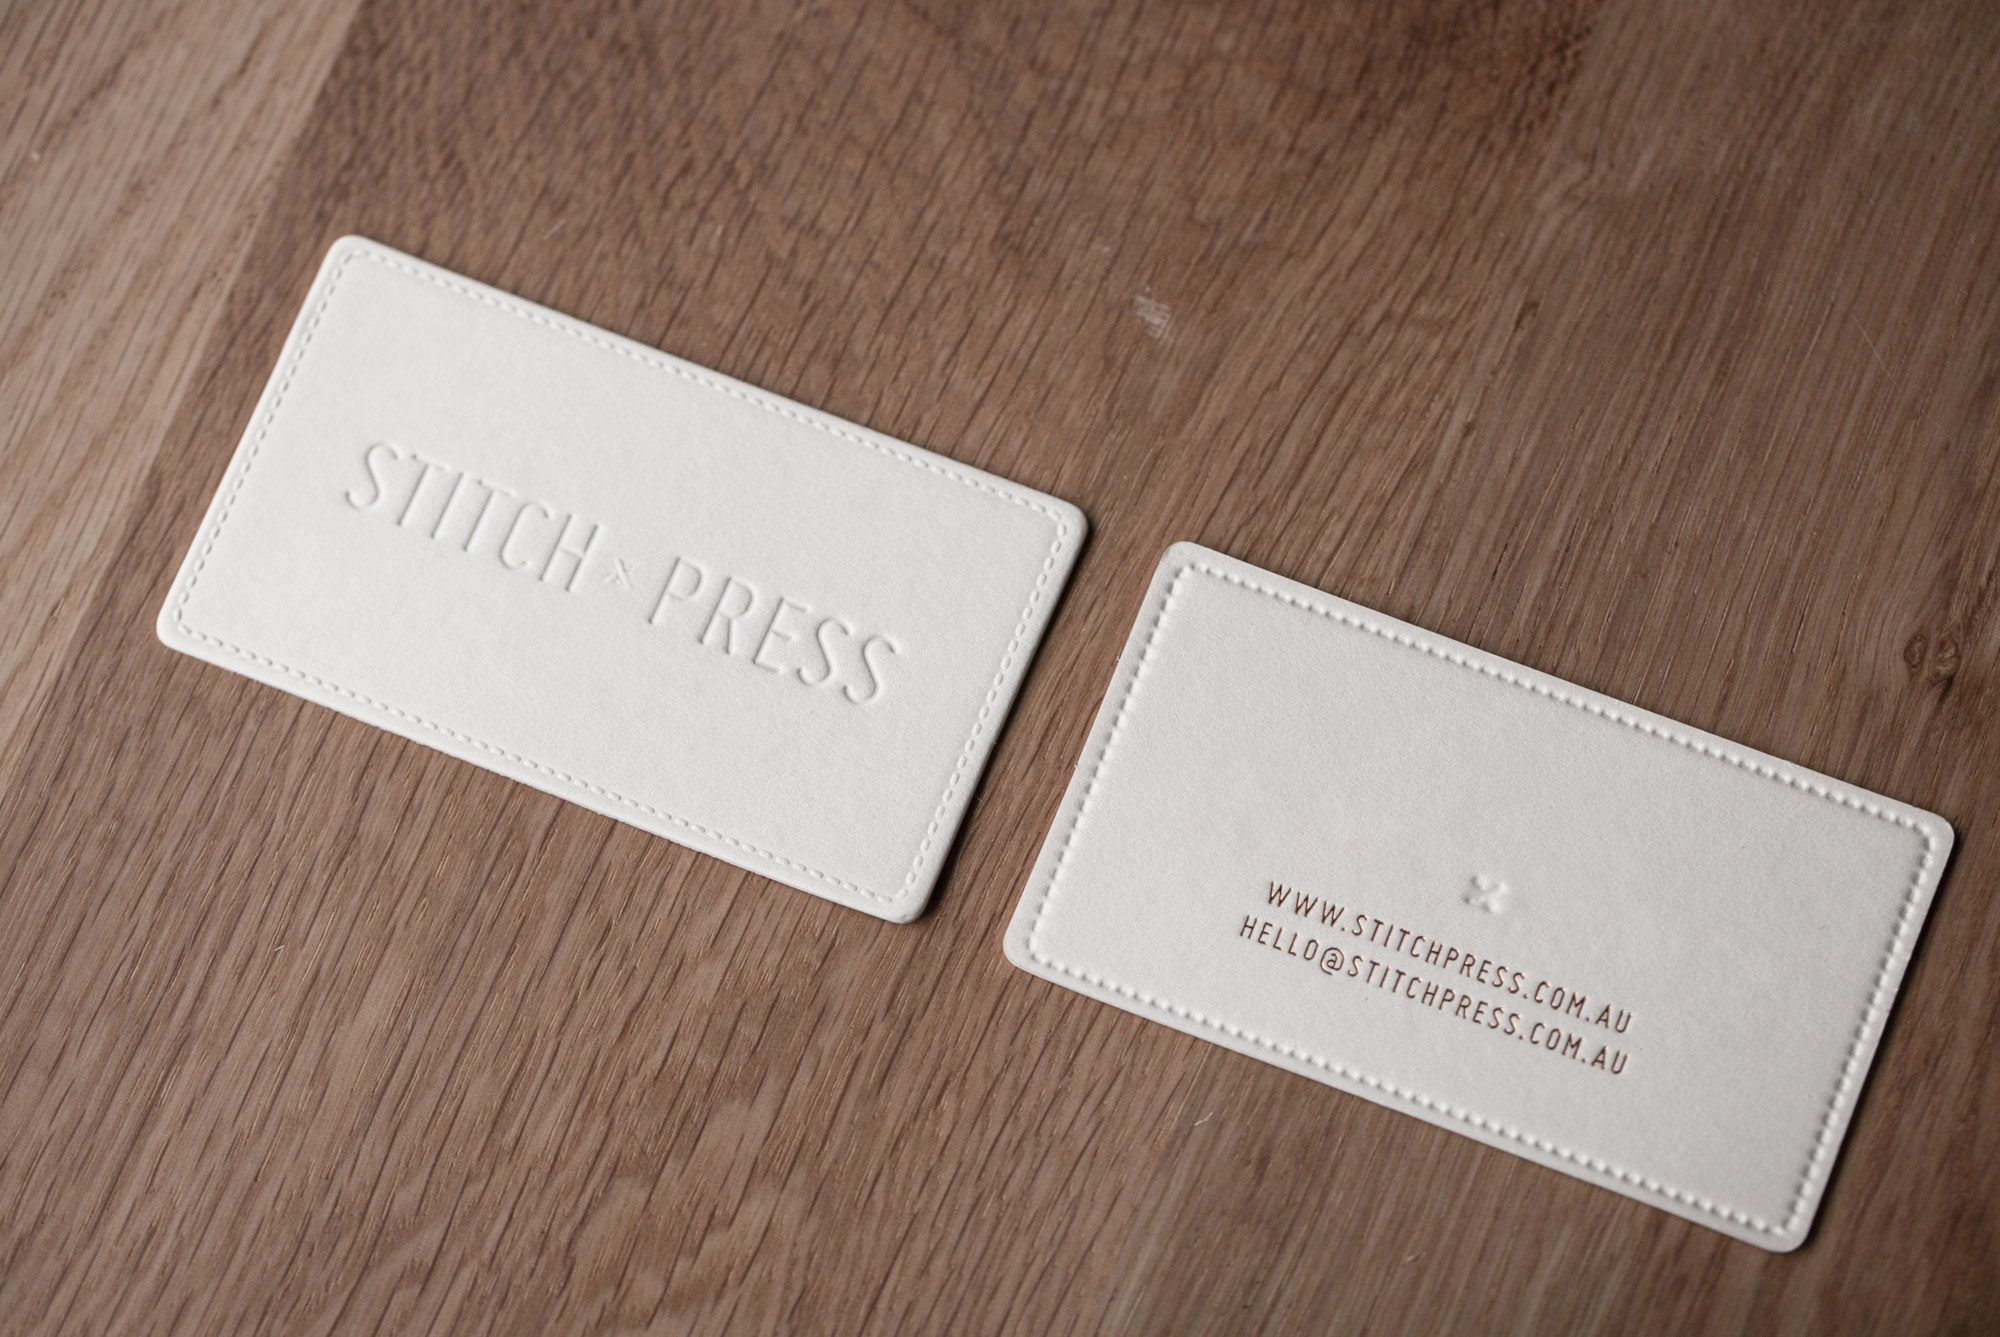 Foiling Business Card Stitch Press Business Card Blind Deboss